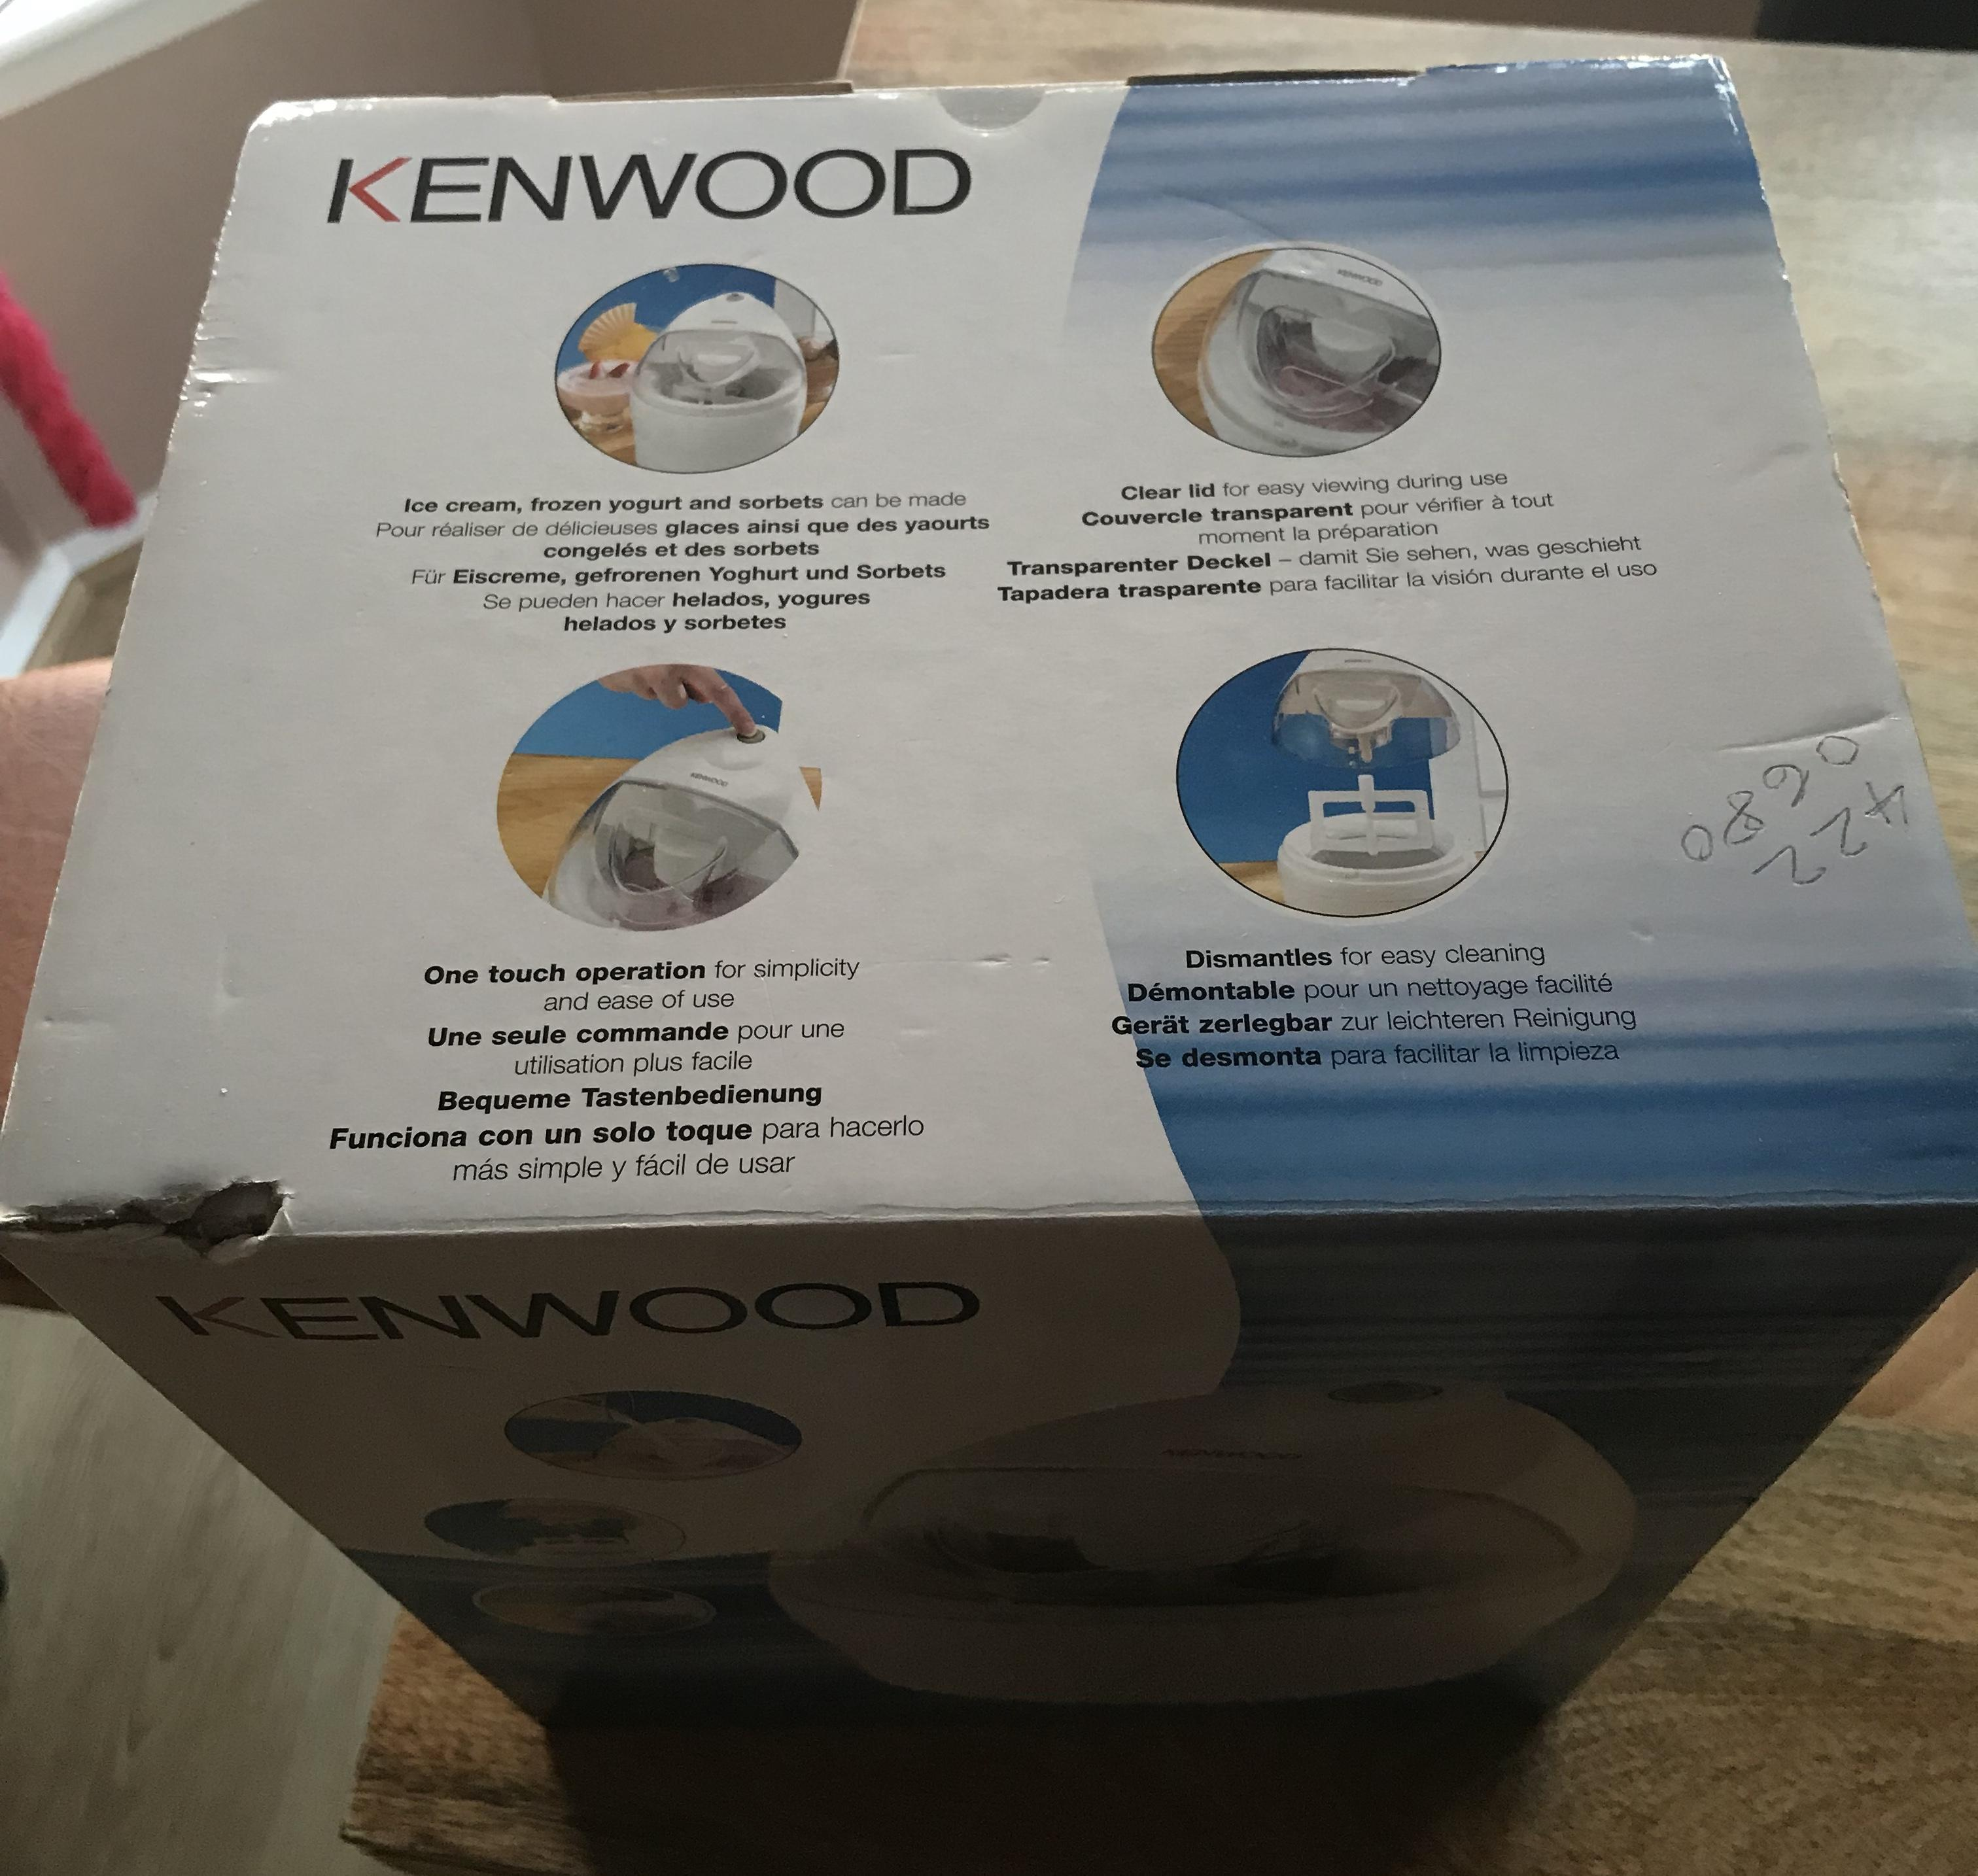 Kenwood Ice cream maker. Sorbets and frozen yoghurt. Boxed